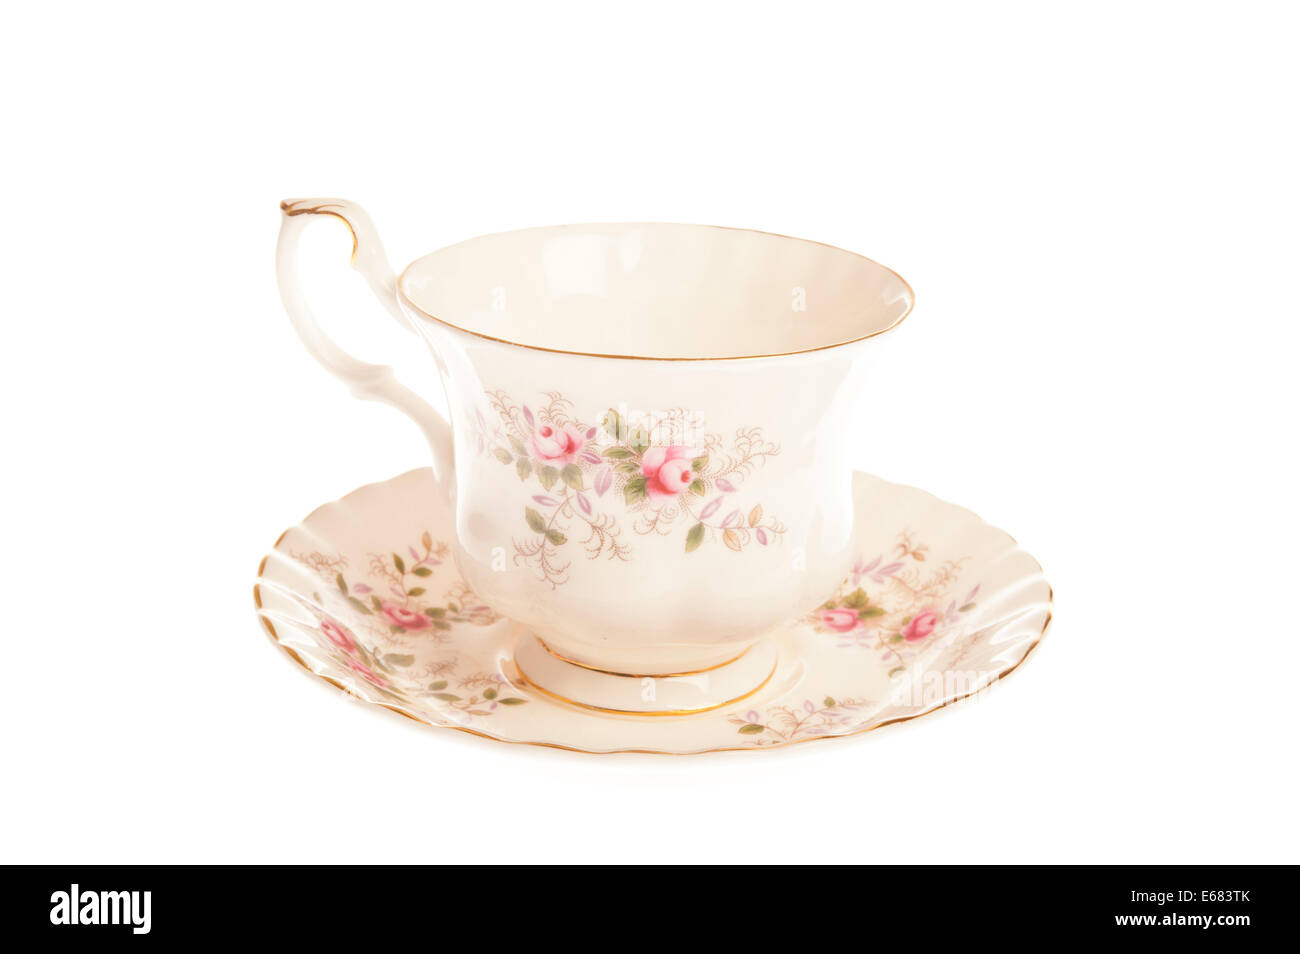 cup for tea decorated, cup and saucer - Stock Image